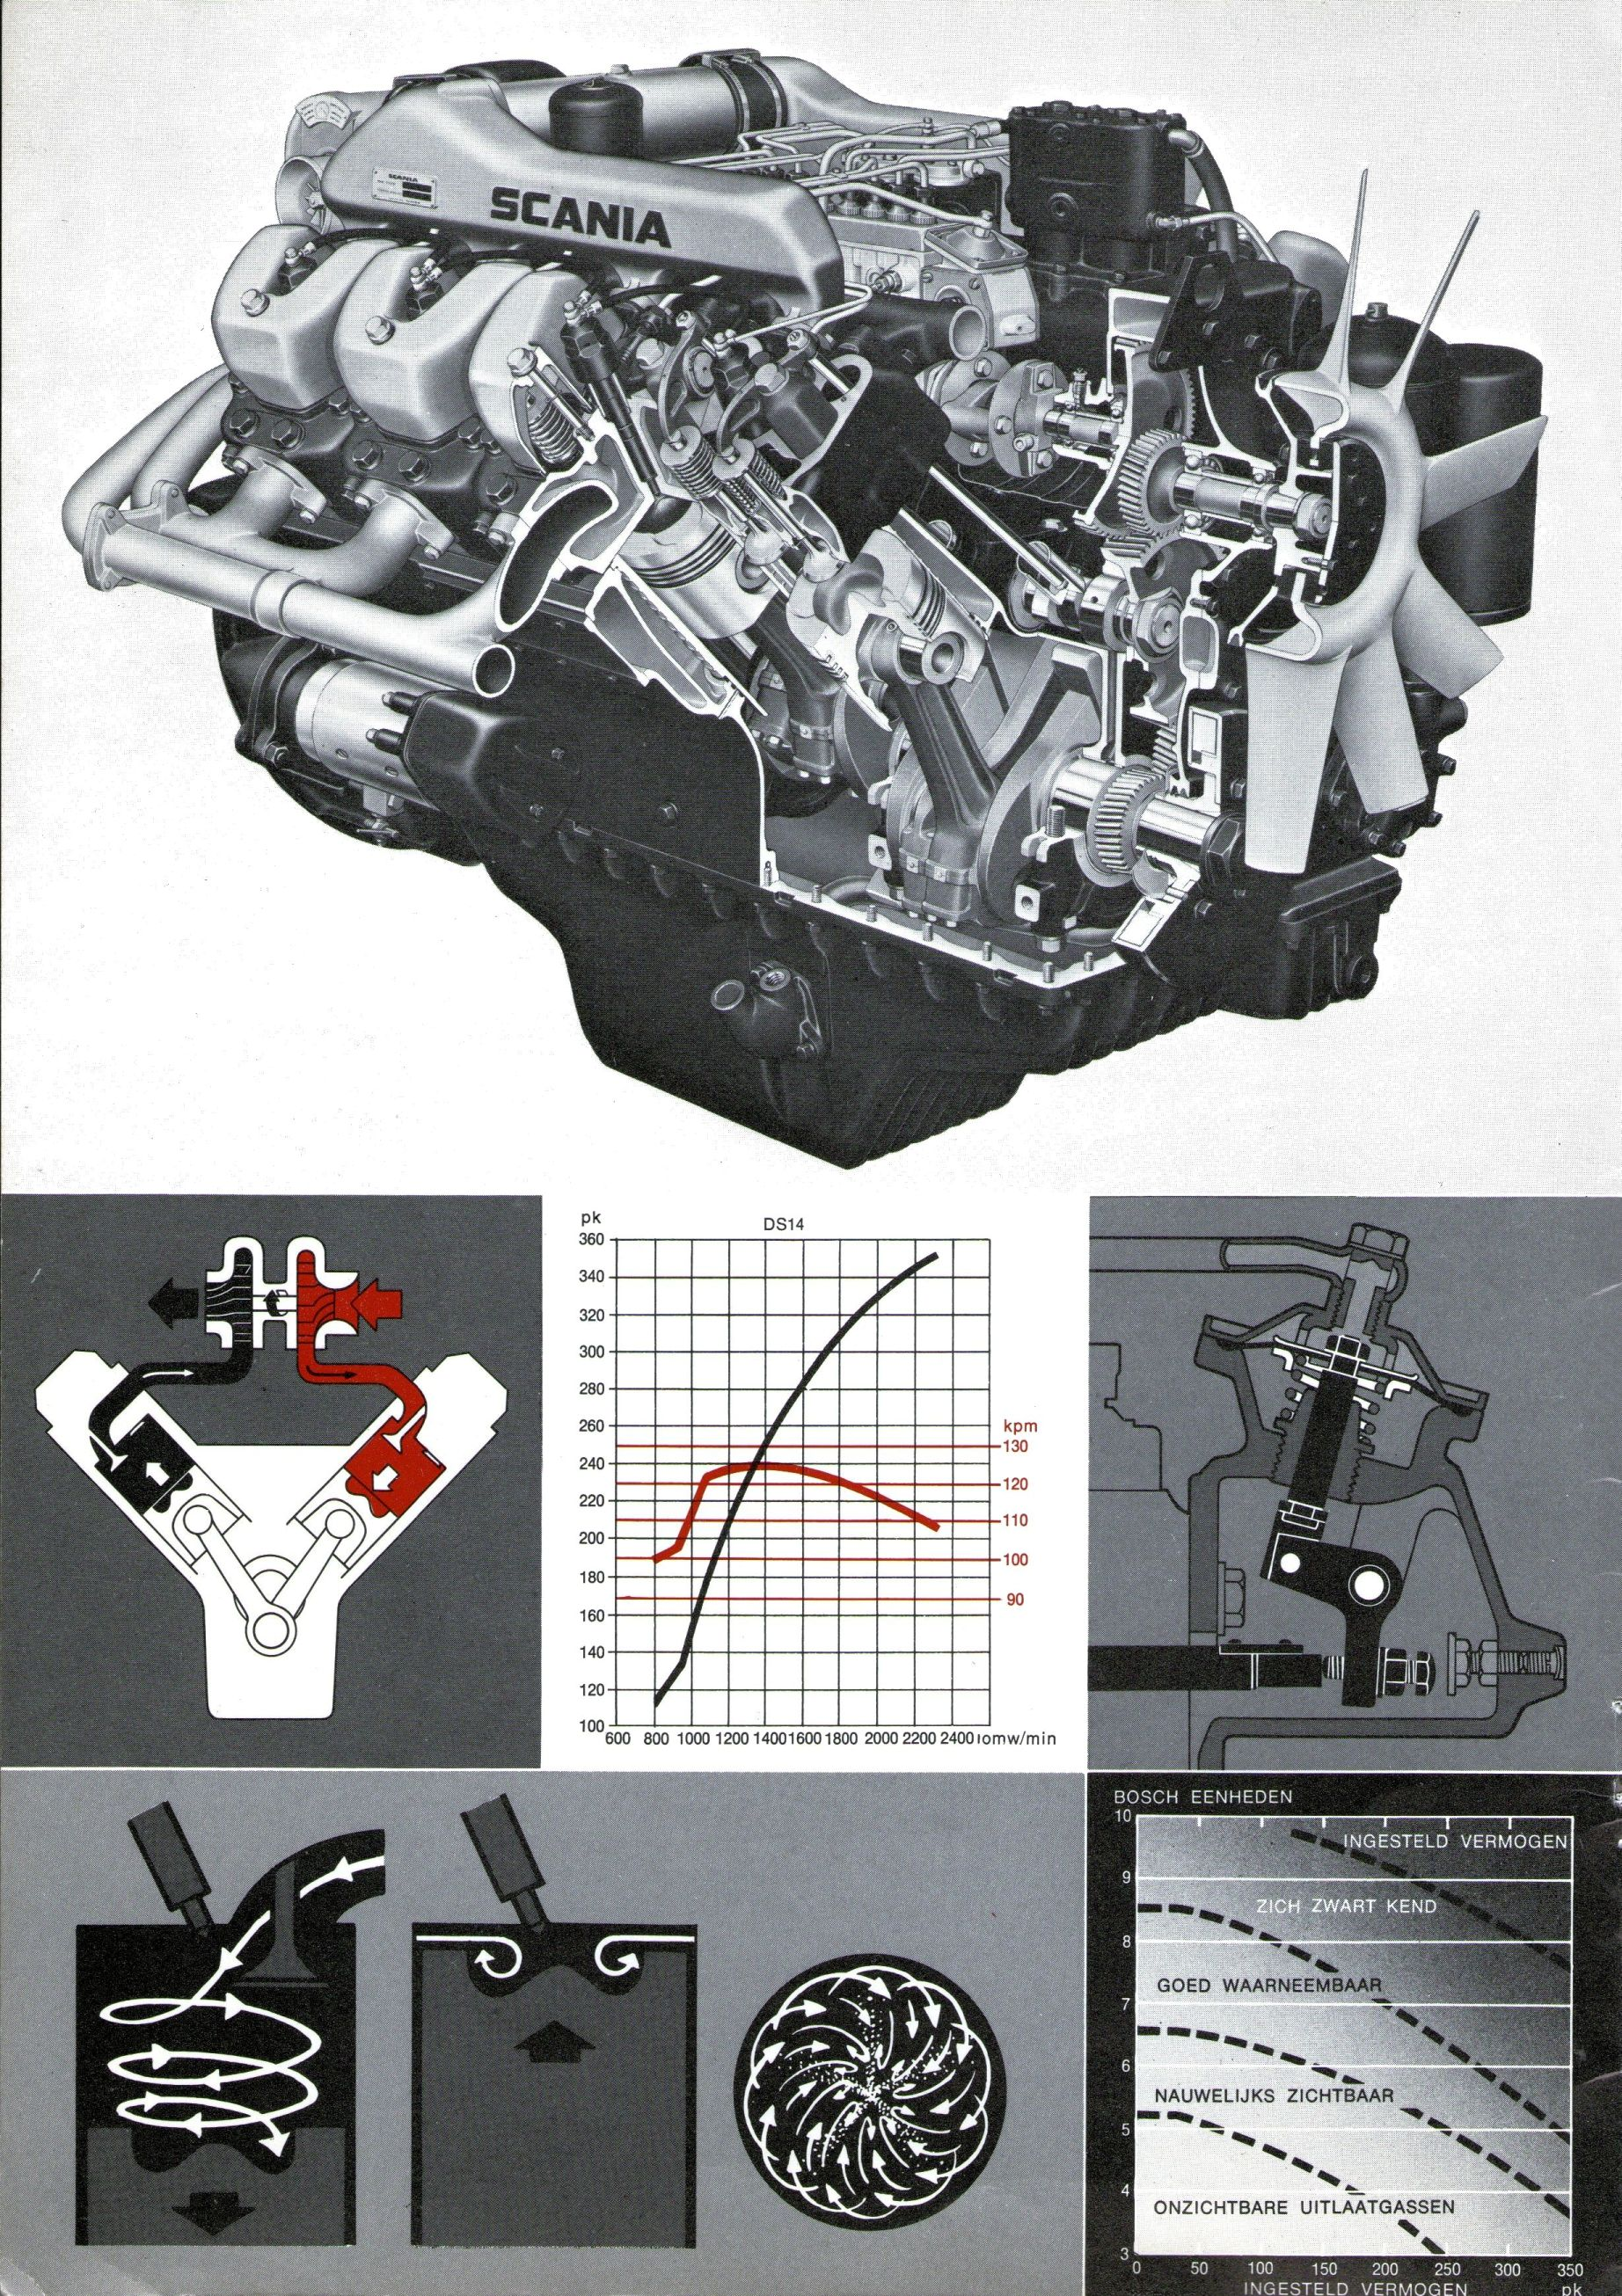 1972 Scania L/LS 140 brochure